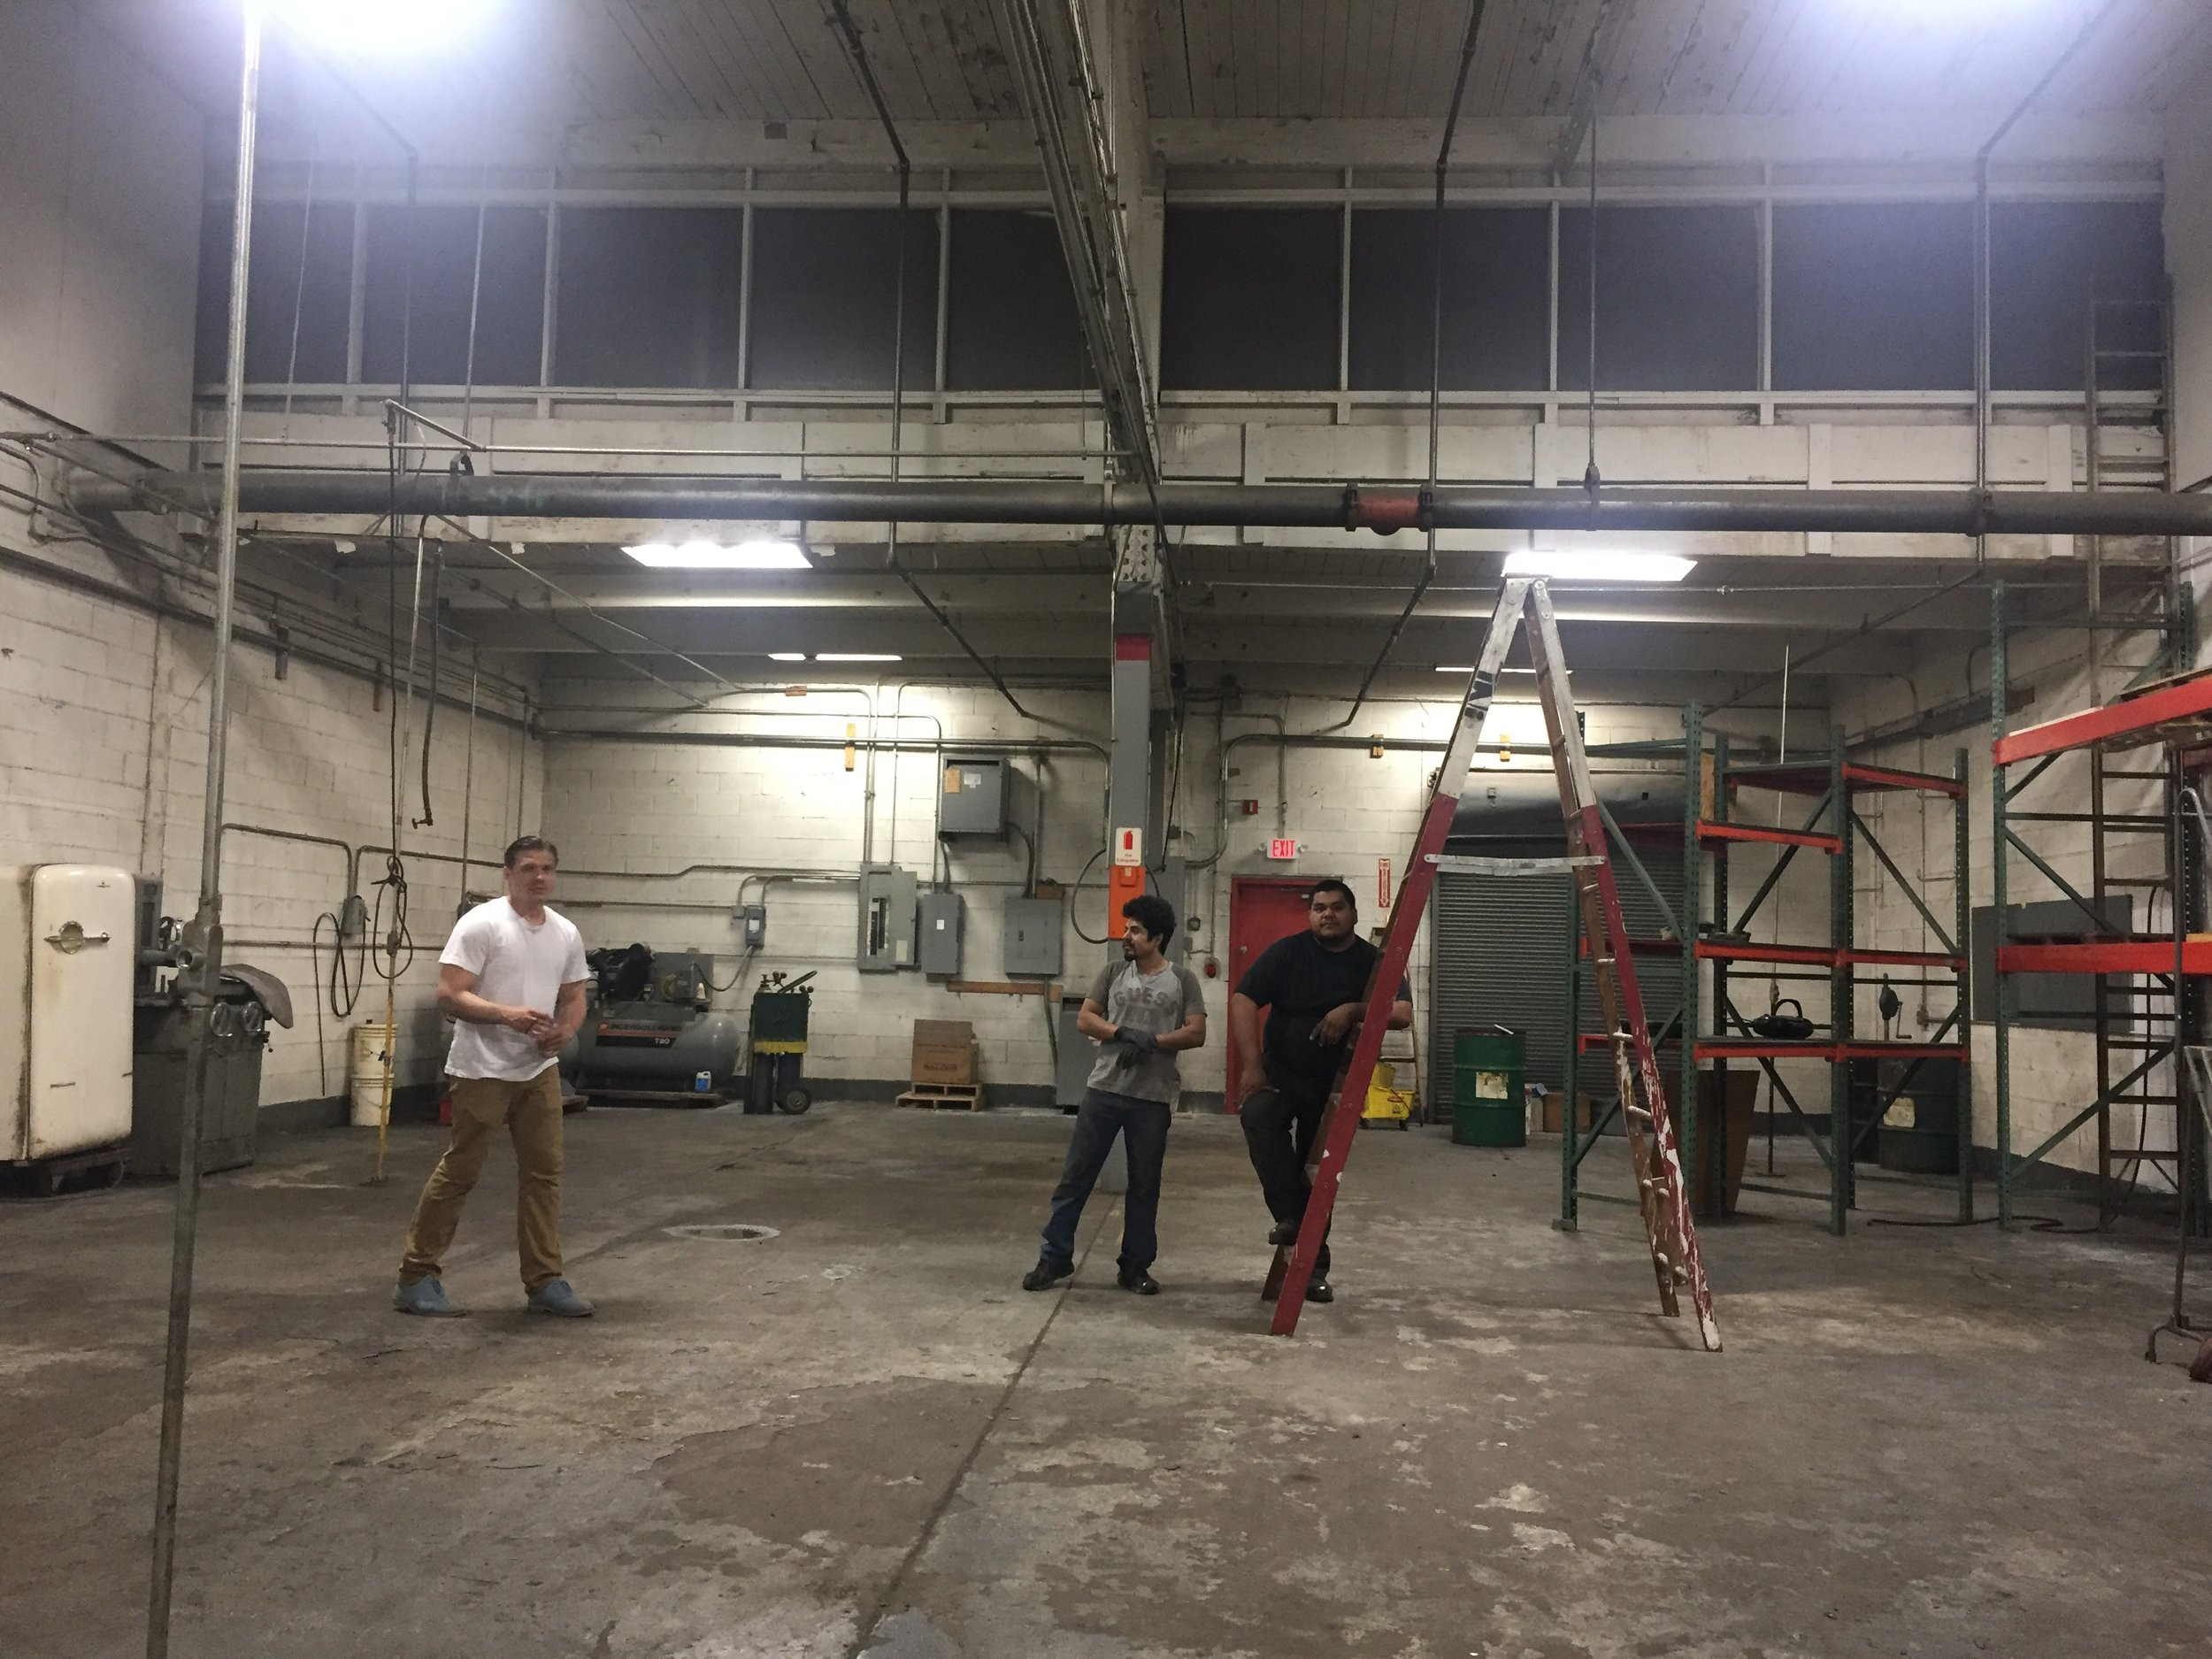 Dan, Jesus and Edgar inspect the new space after finishing cleaning.